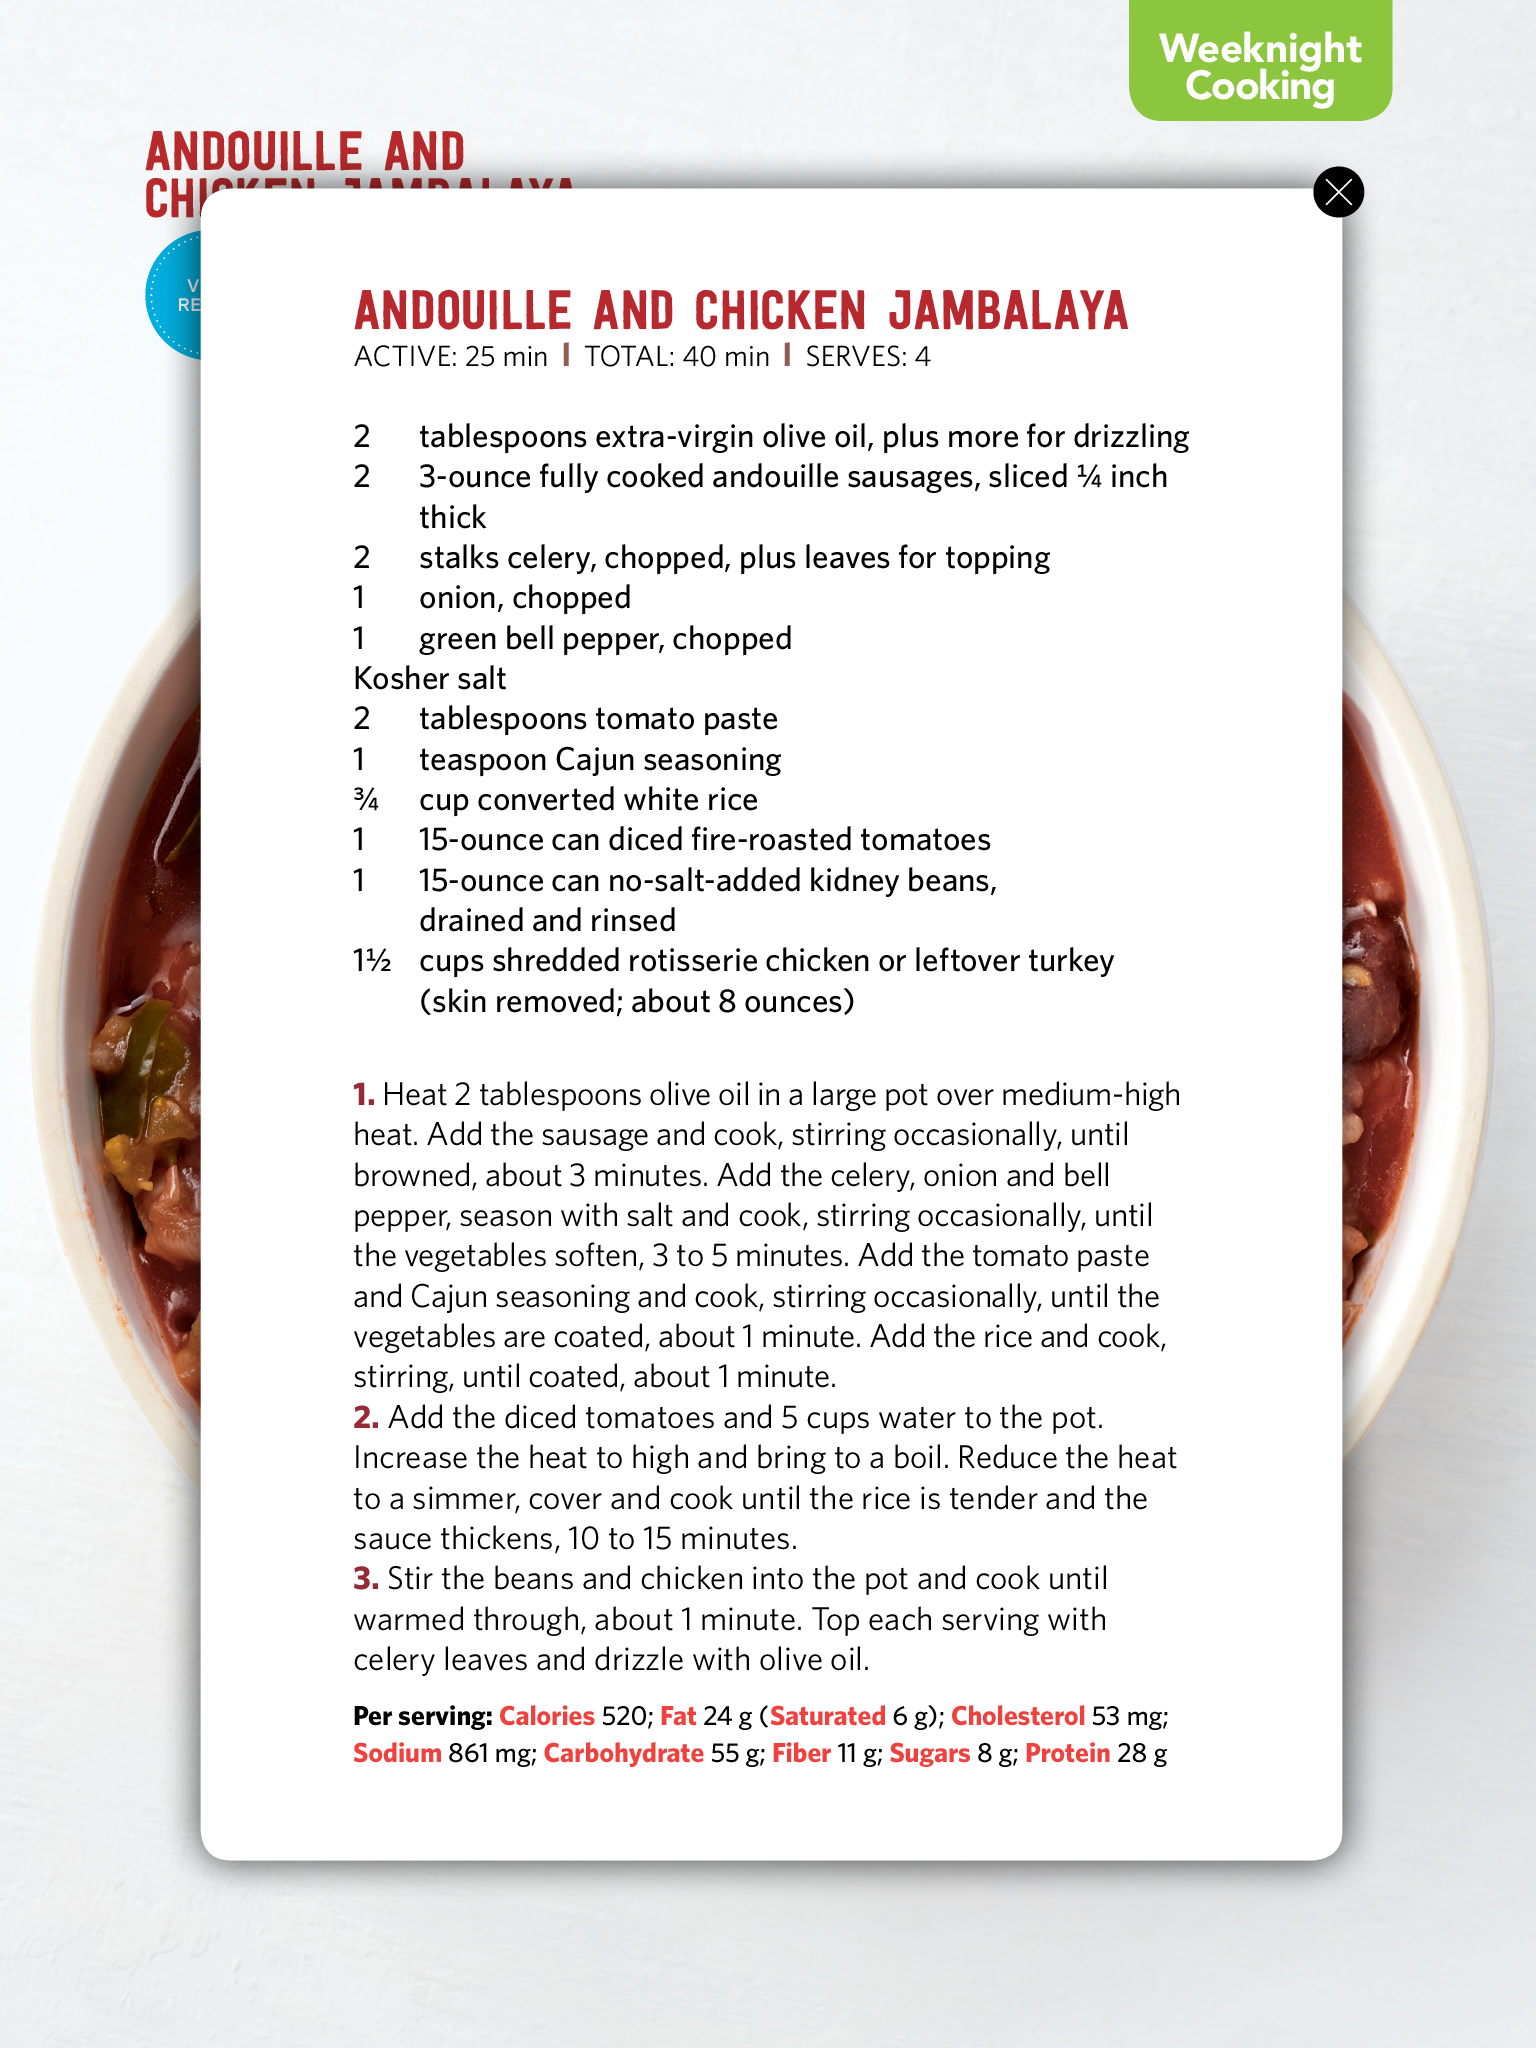 Pin by susanna pope on recipes to try pinterest recipes food network chicken jambalaya recipes november magazine casseroles november born casserole dishes recipies forumfinder Gallery